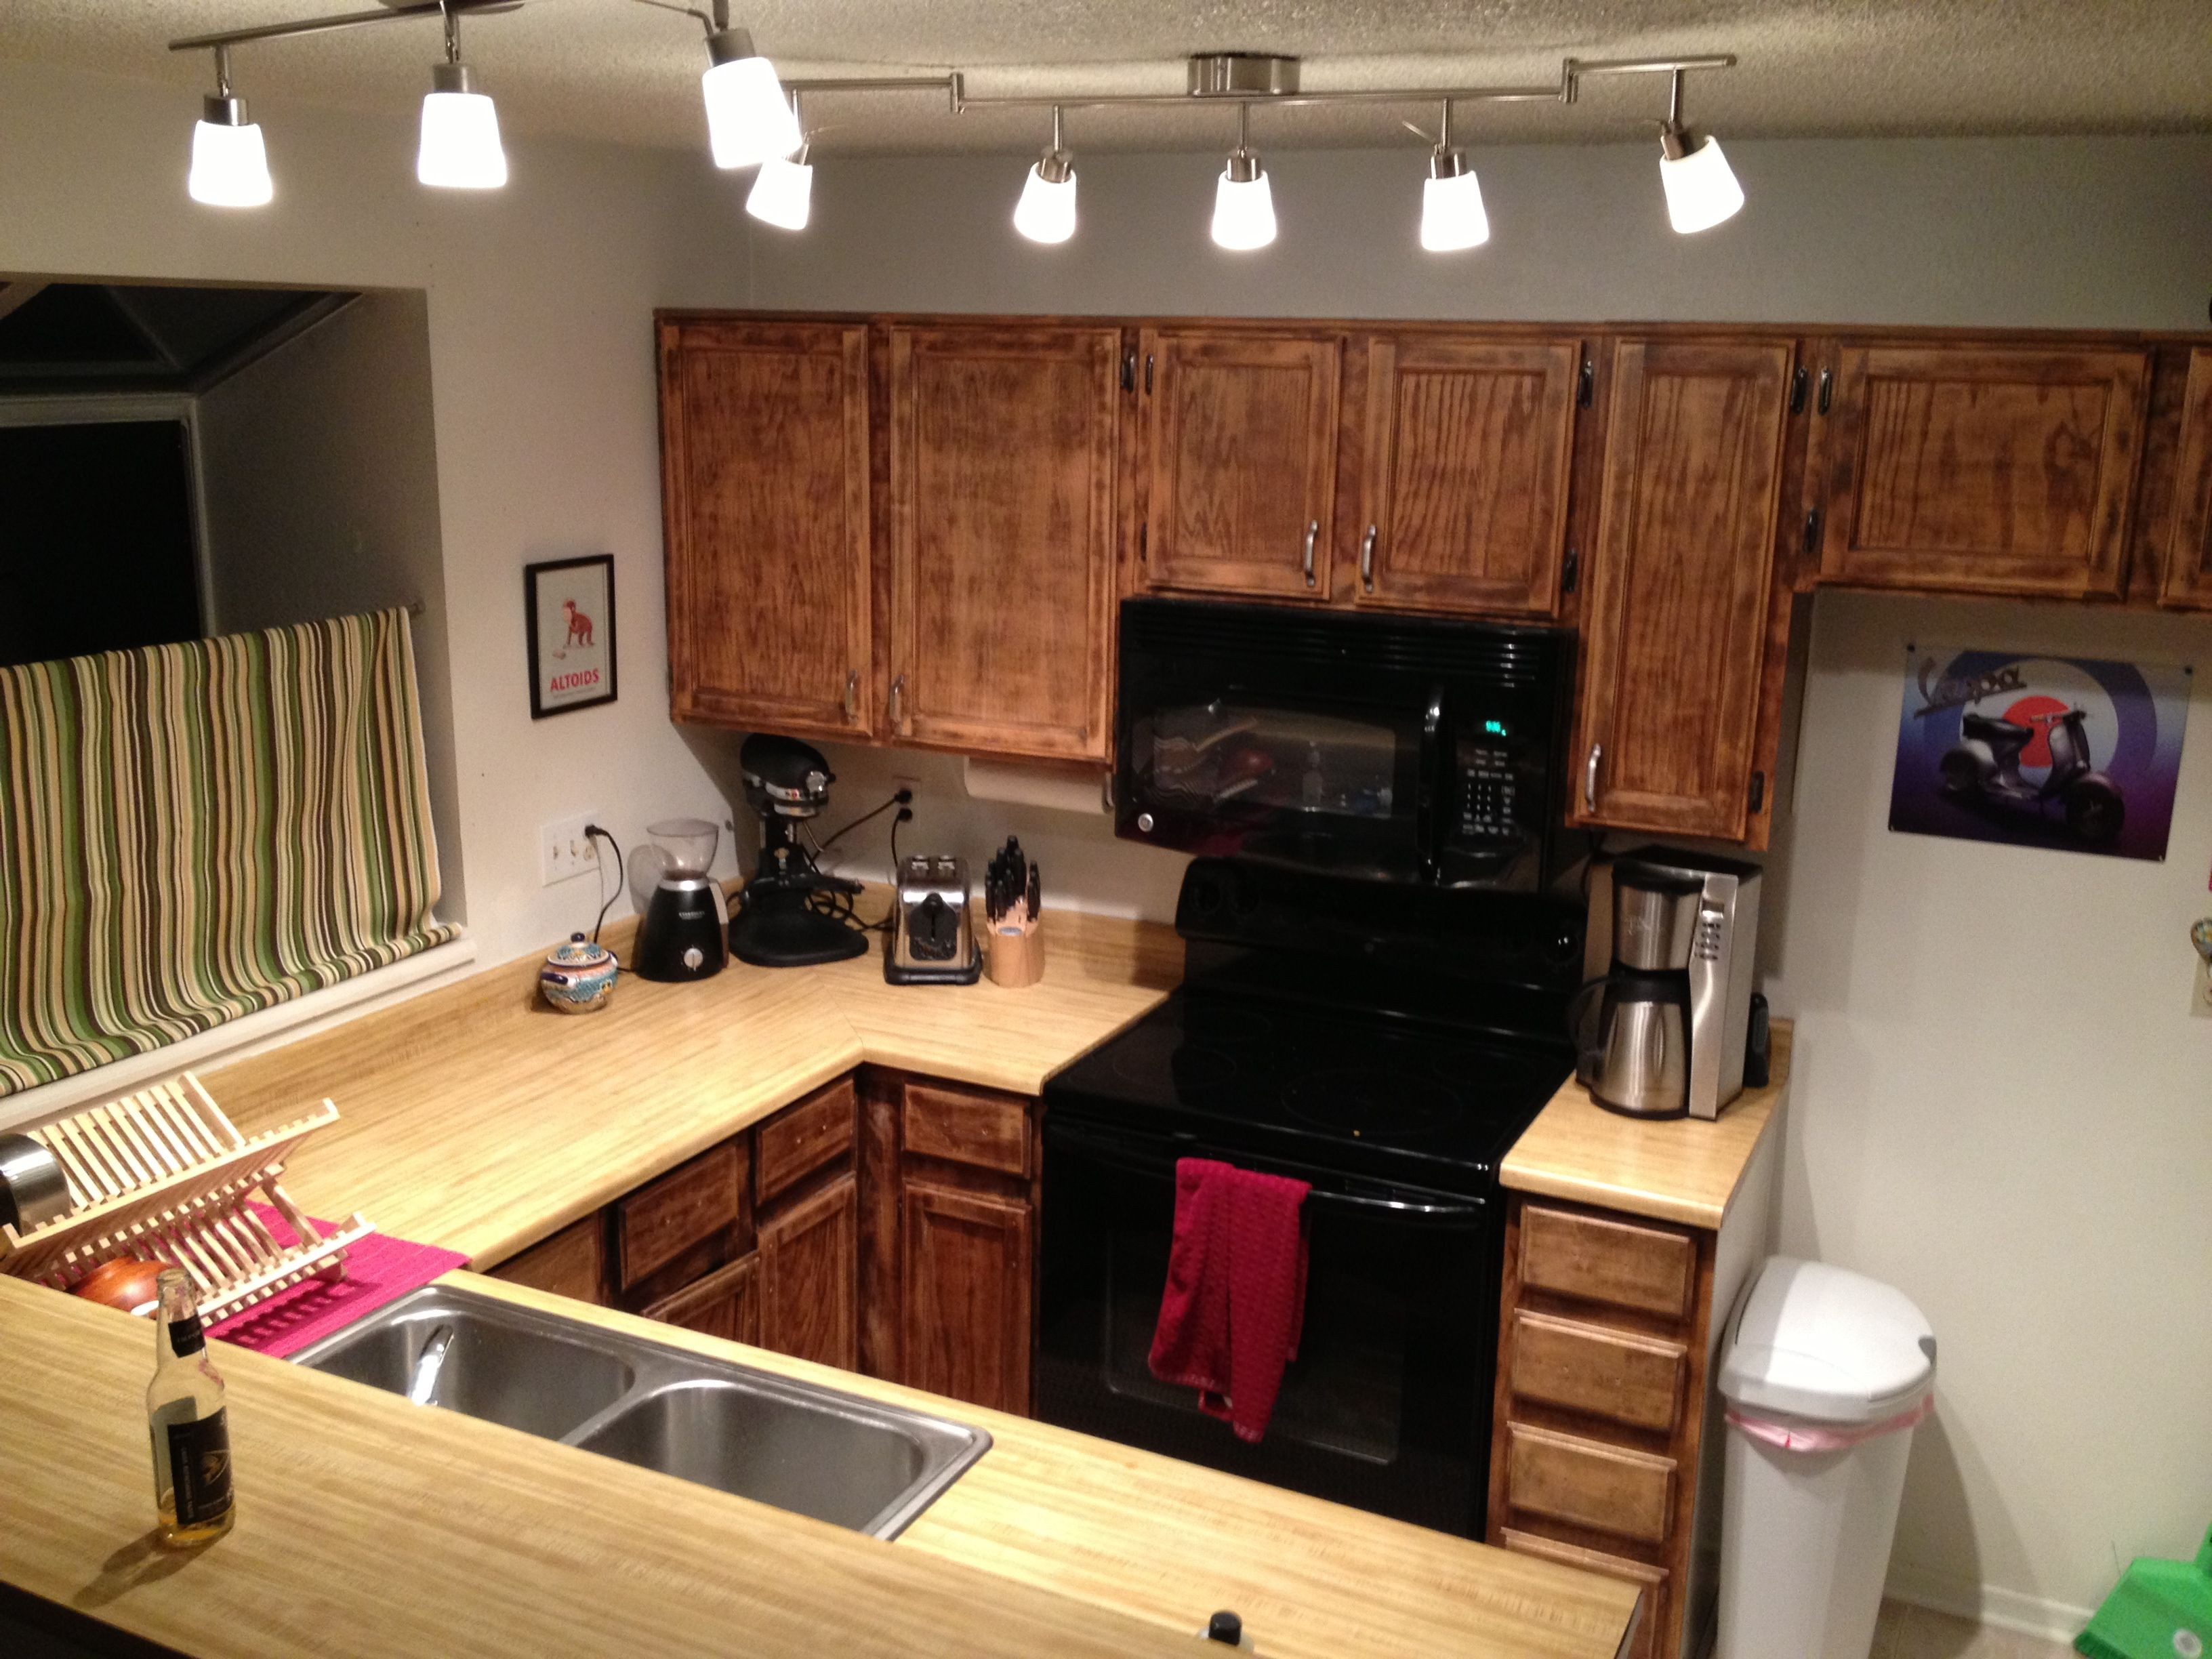 ikea lighting kitchen. Swapped Out My Kitchen Lighting For Ikea Lighting. The 5 Light Set Is Tidig